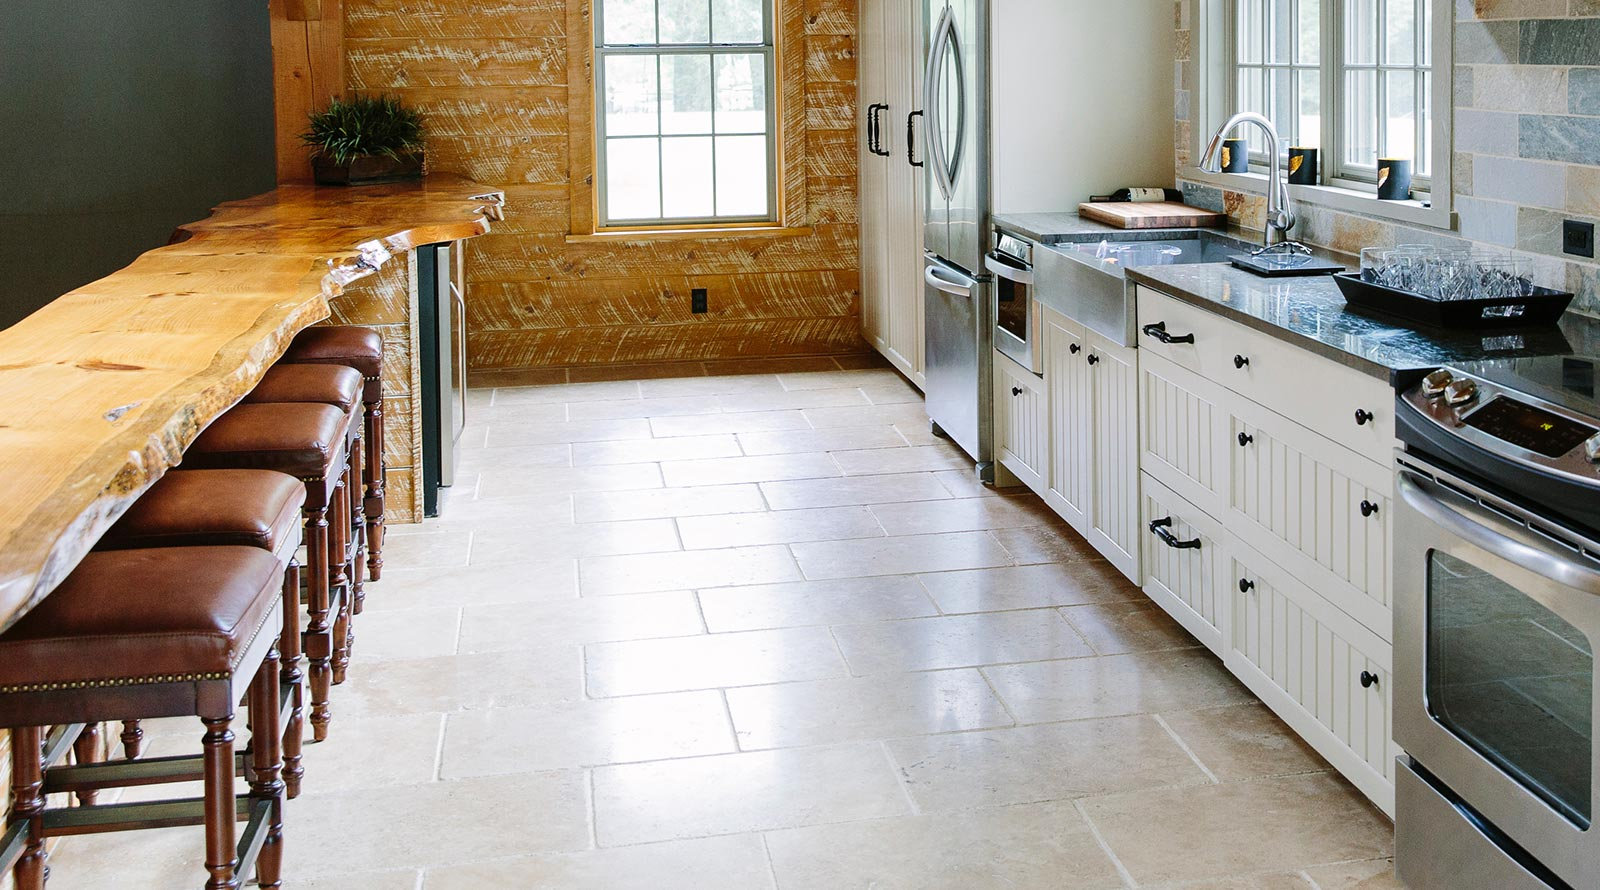 Why Install Floor Heating for Your Kitchen